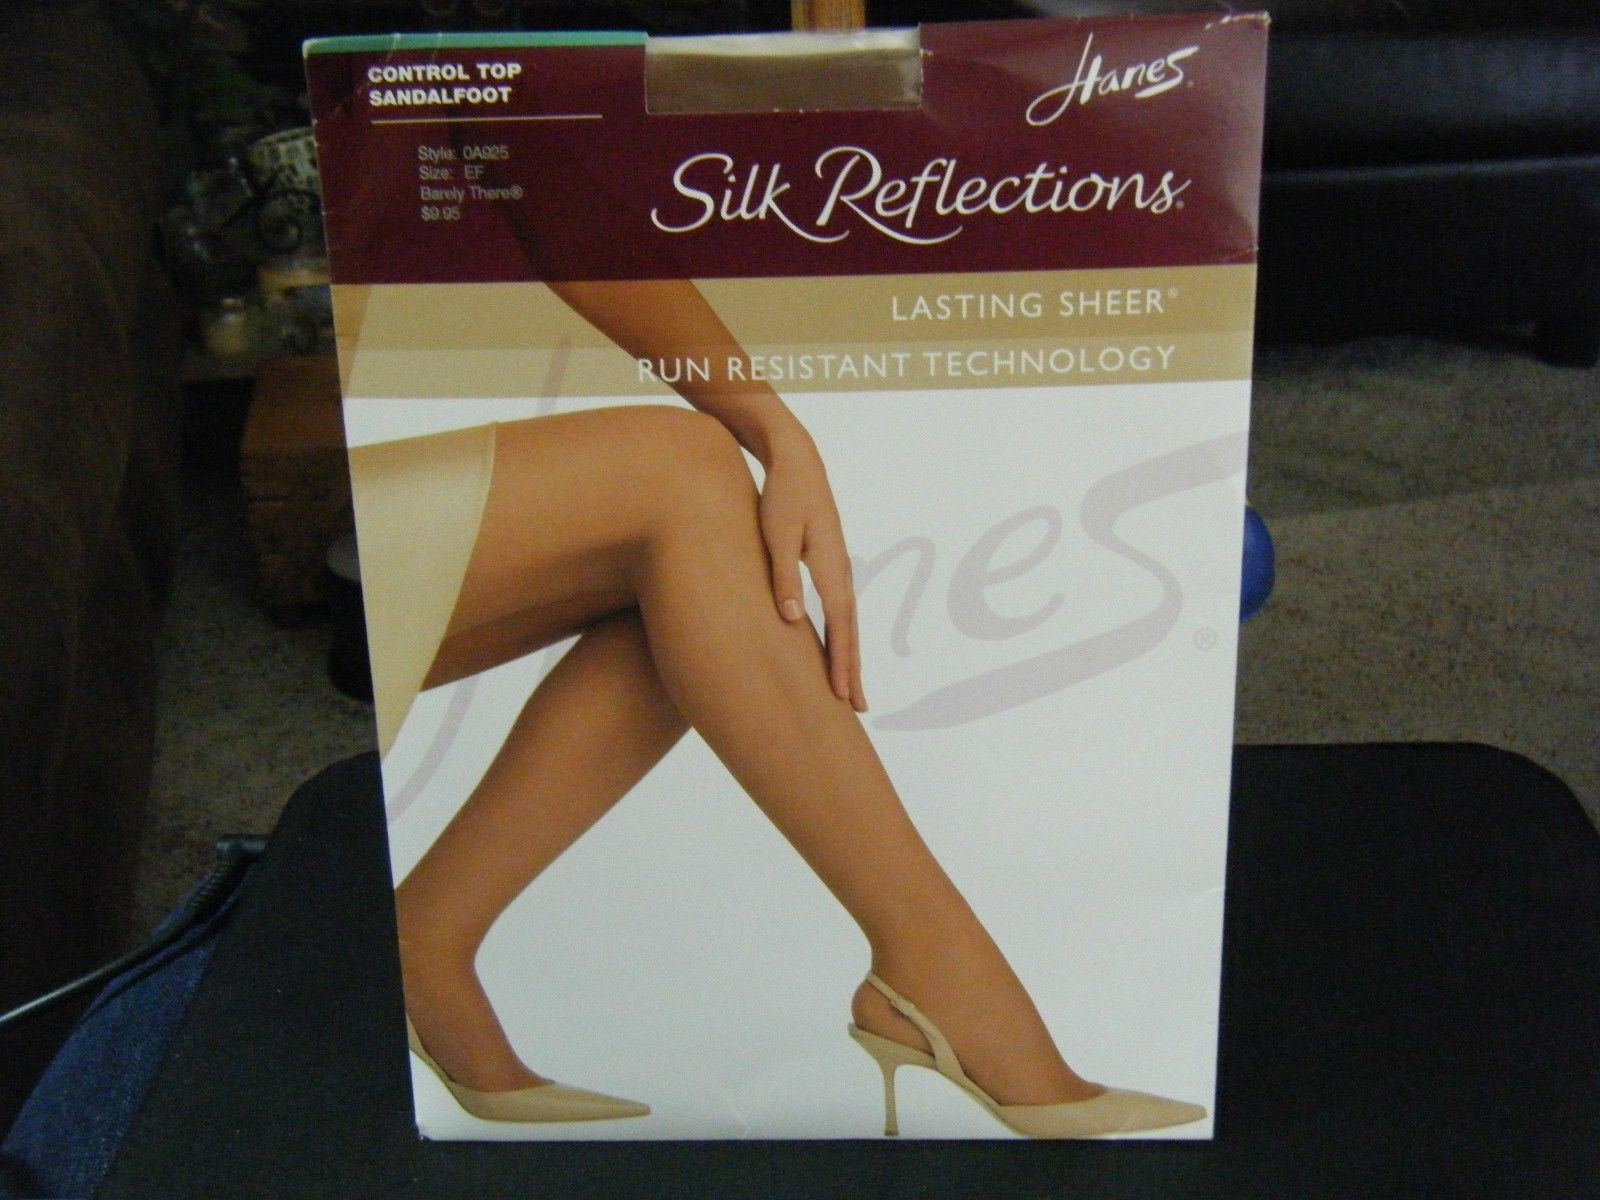 805561a2f Hanes Silk Reflections Control Top and 40 similar items